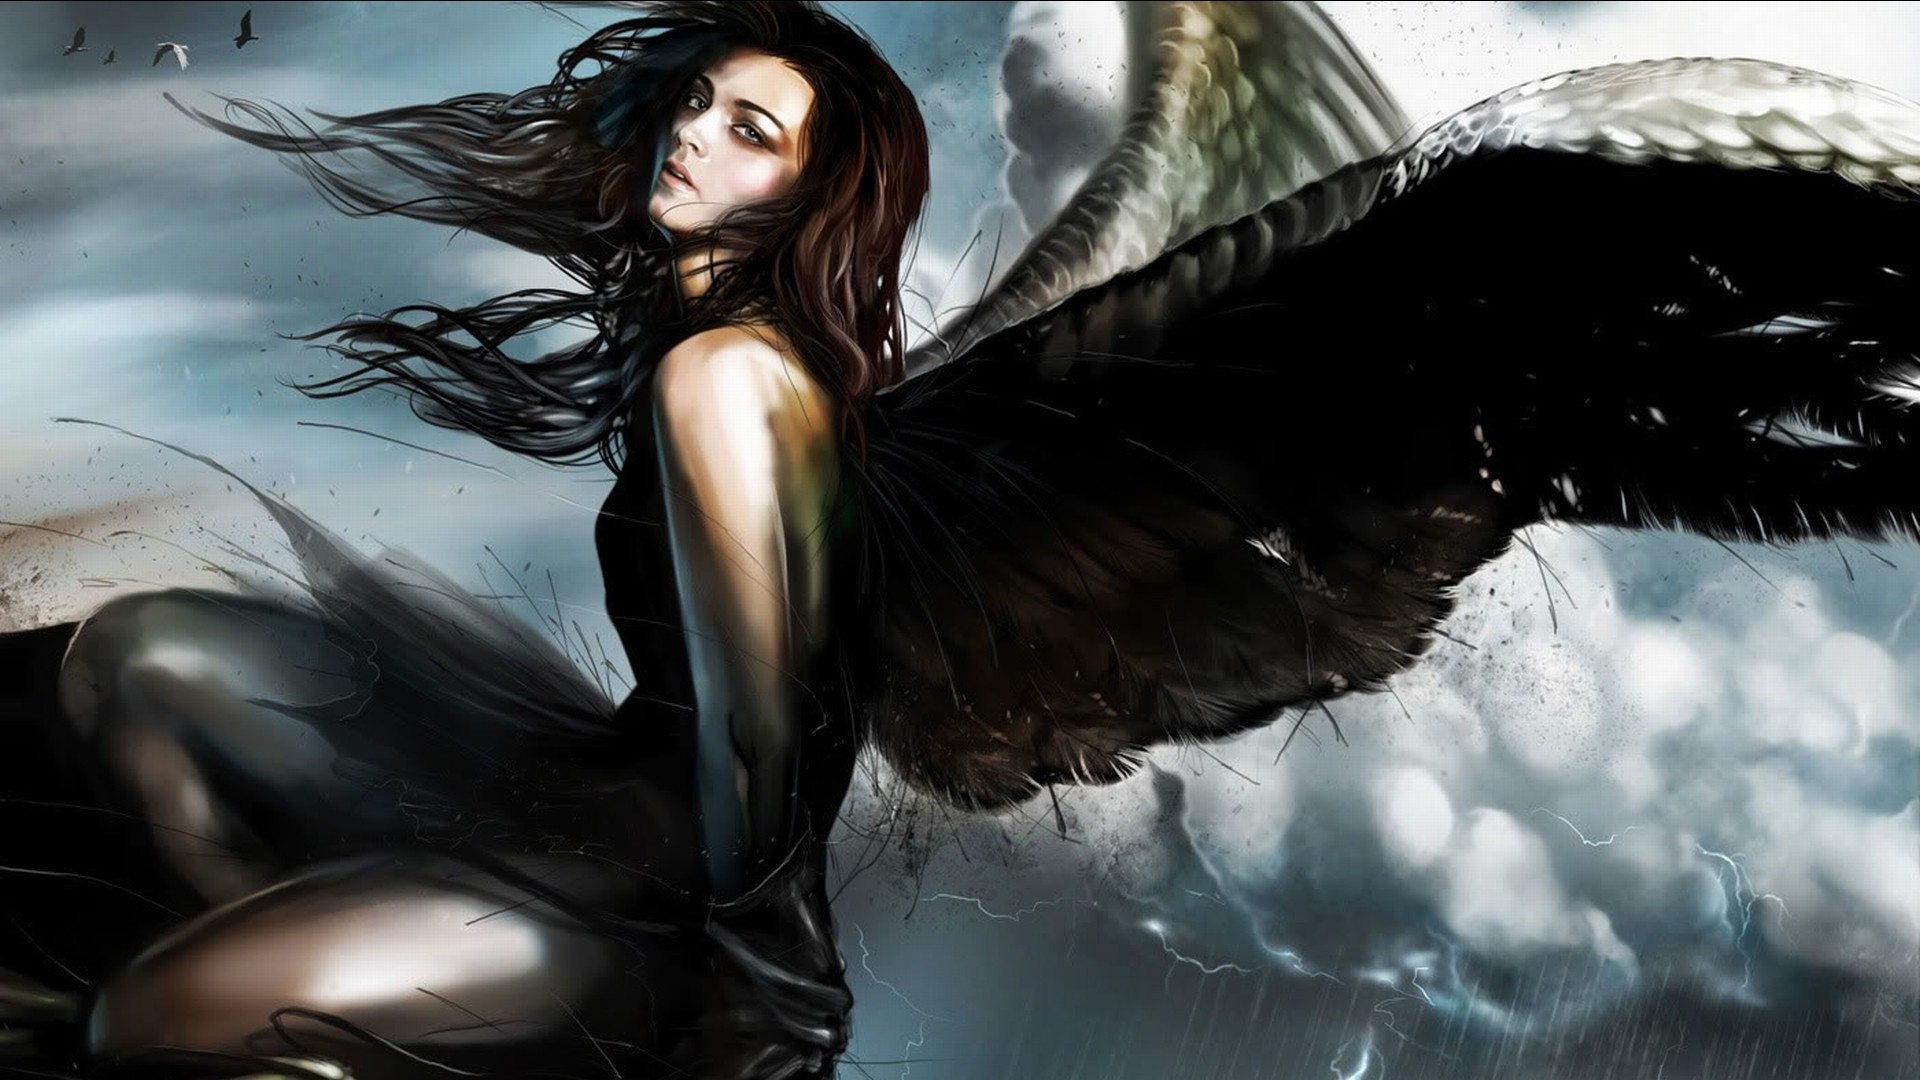 Beautiful Sweet Girl Hd Wallpaper Fantasy Art Artwork Angel Wallpapers Hd Desktop And